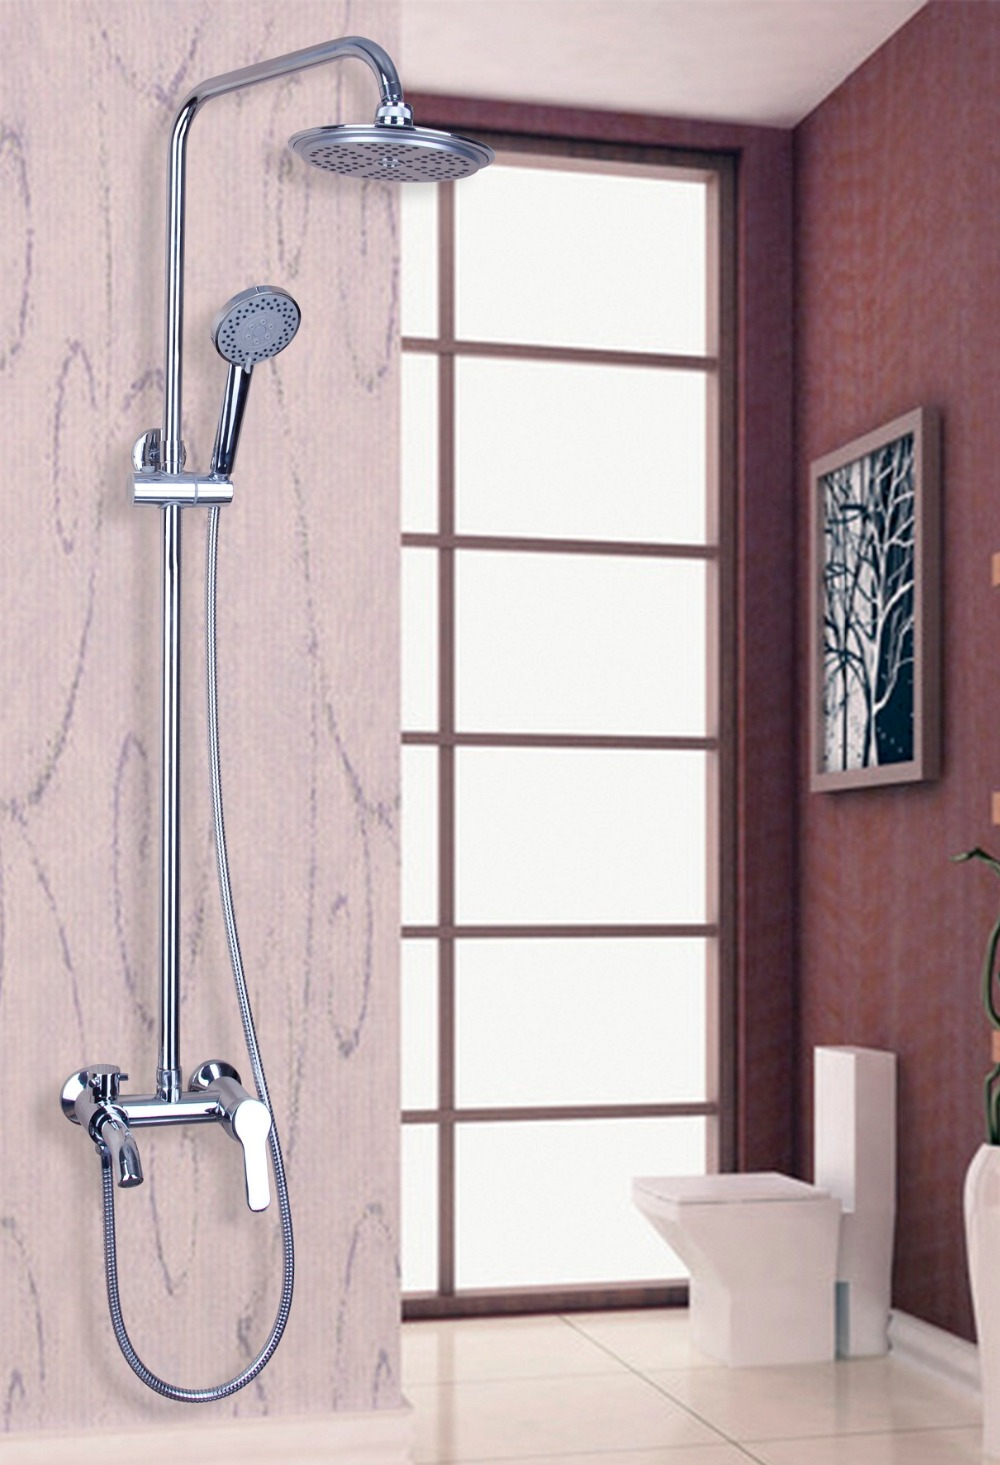 Compare Prices on Adjustable Height Shower- Online Shopping/Buy ...